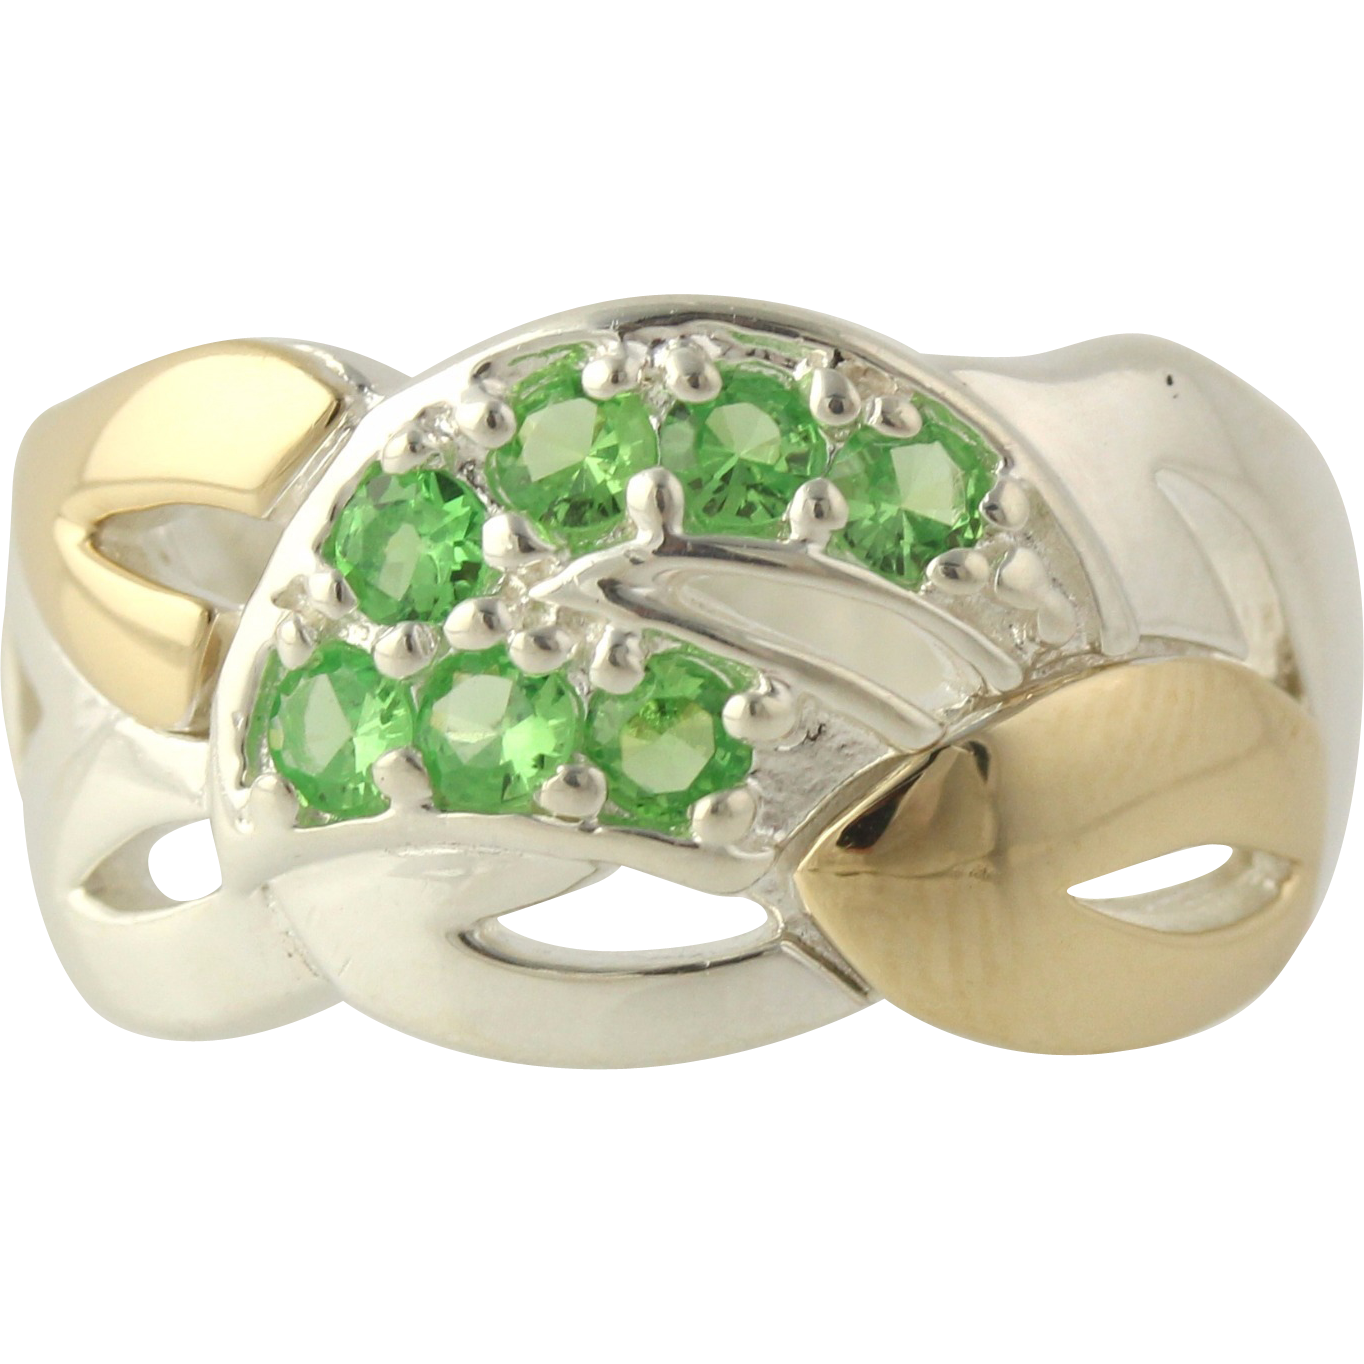 Synthetic Green Spinel Cocktail Ring - Sterling Silver & 14k Yellow Gold Women's